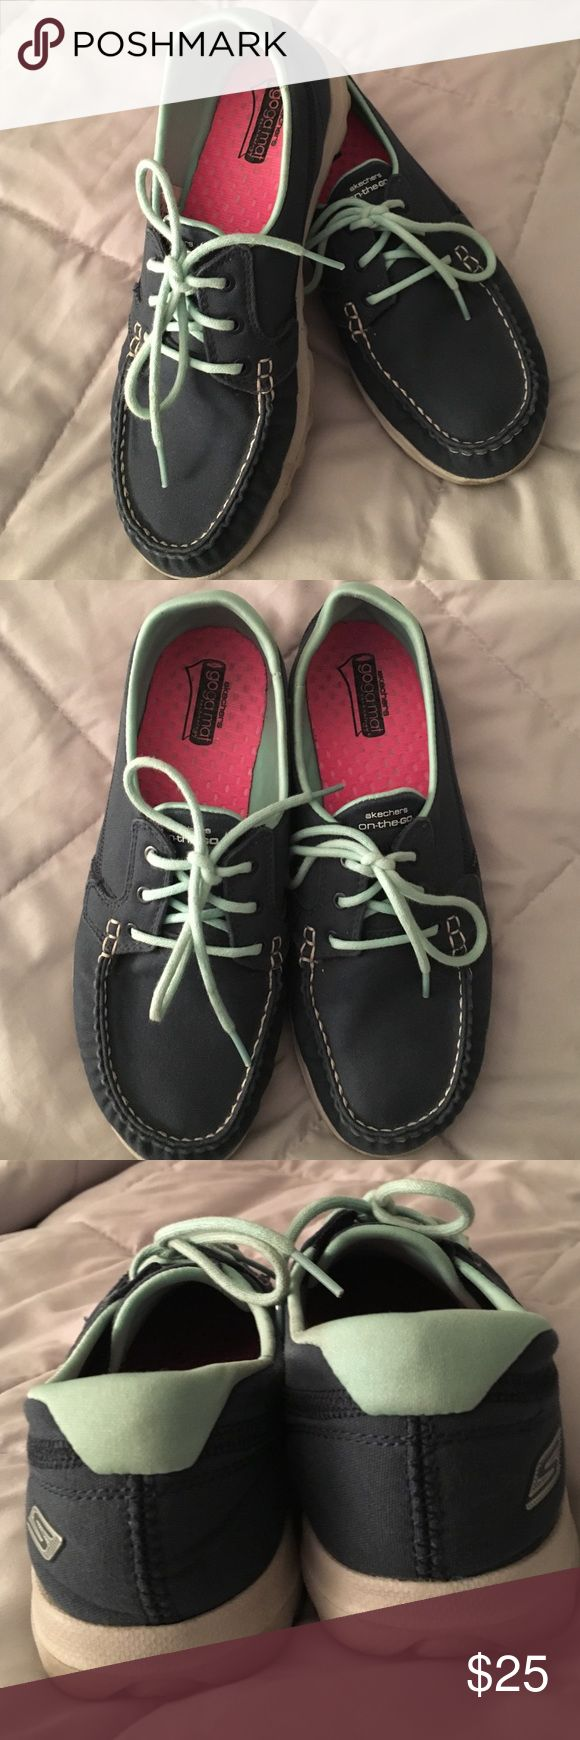 """Skechers on the go shoes Navy blue Skechers. Laces are aqua. Excellent condition. On the go, super comfortable shoes with """"goga mat"""" technology. Size 8 Skechers Shoes Sneakers"""